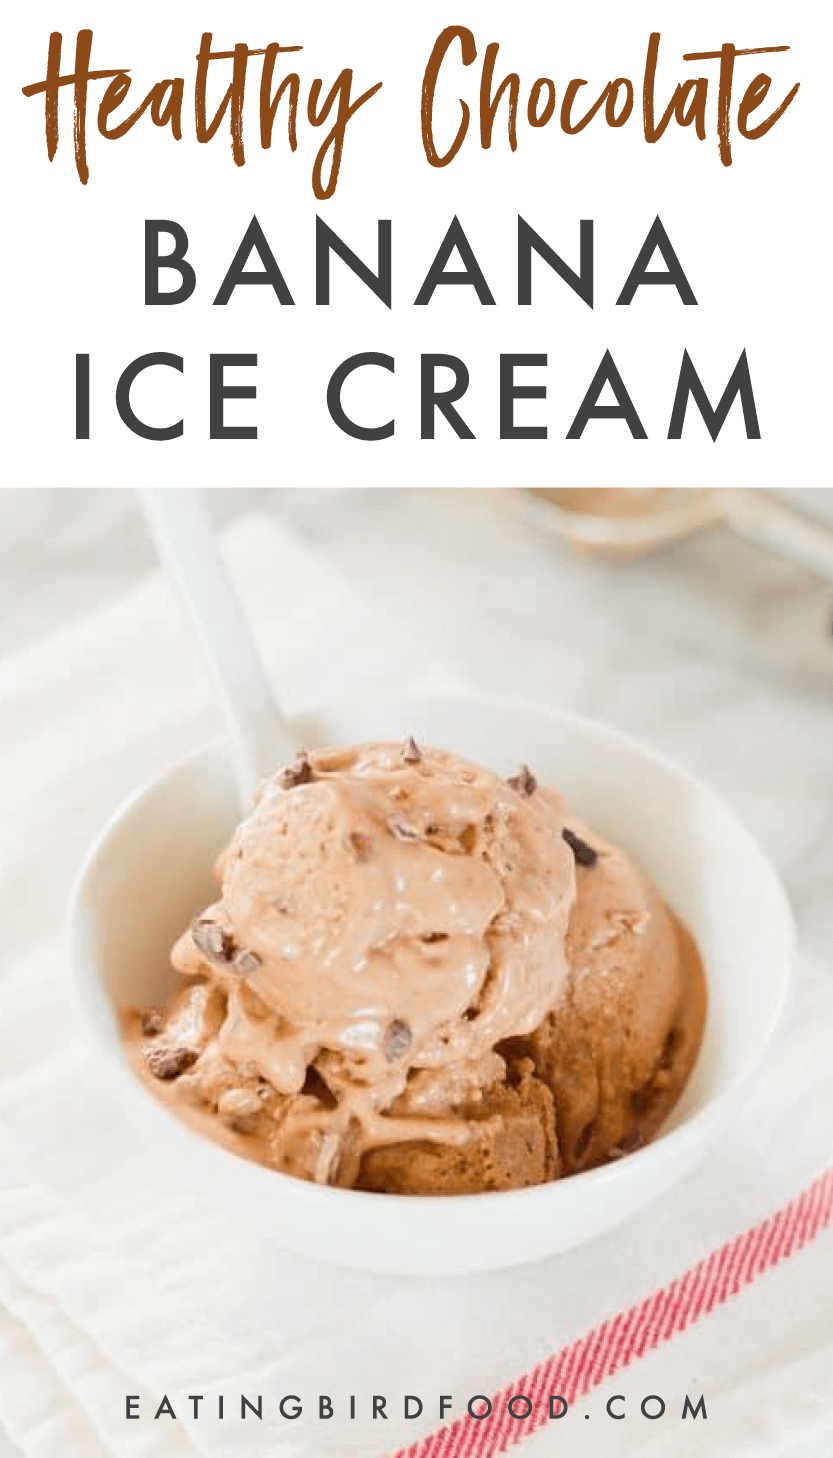 Make HEALTHY Chocolate Banana Ice Cream with frozen bananas, cacao powder, almond milk and almond butter. It's absolutely delicious, healthy, dairy-free and doesn't require an ice cream maker! #dairyfree #nicecream #banana #chocolate #icecream #bananaicecream #vegan #glutenfree #dessert #healthydessert #cleaneating #healthyicecream